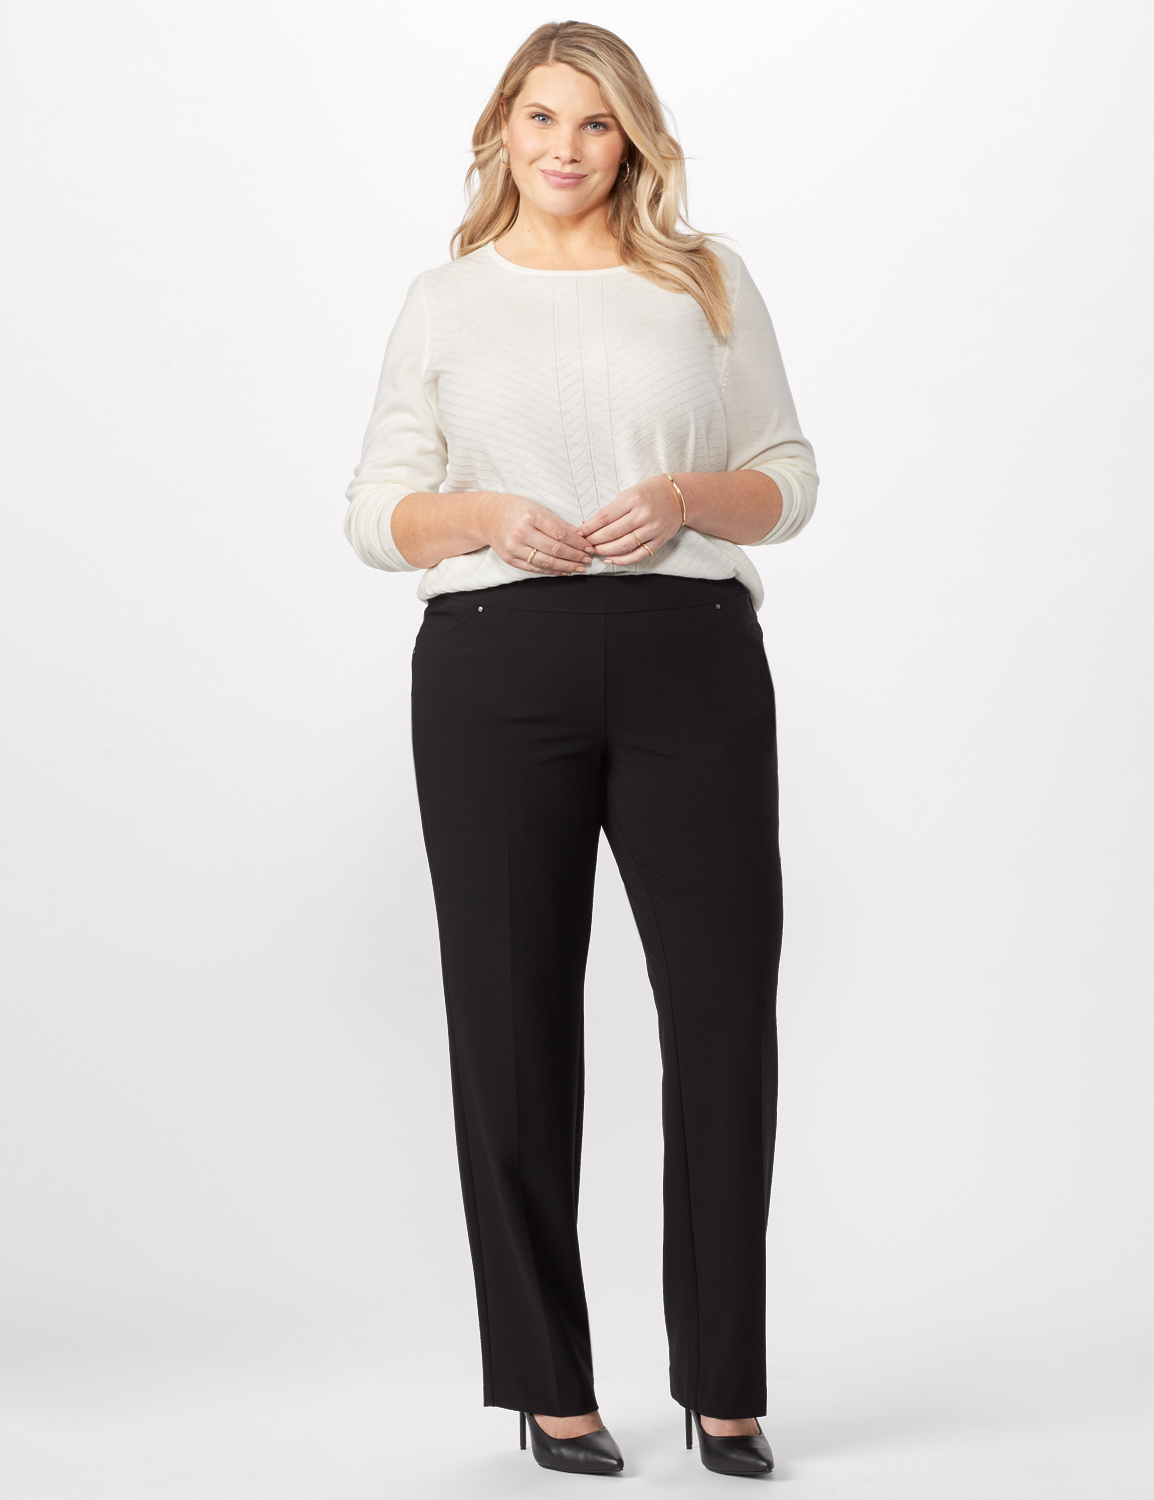 Roz & Ali Secret Agent Pull On Tummy Control Pants - Short Length - Plus -Black - Front